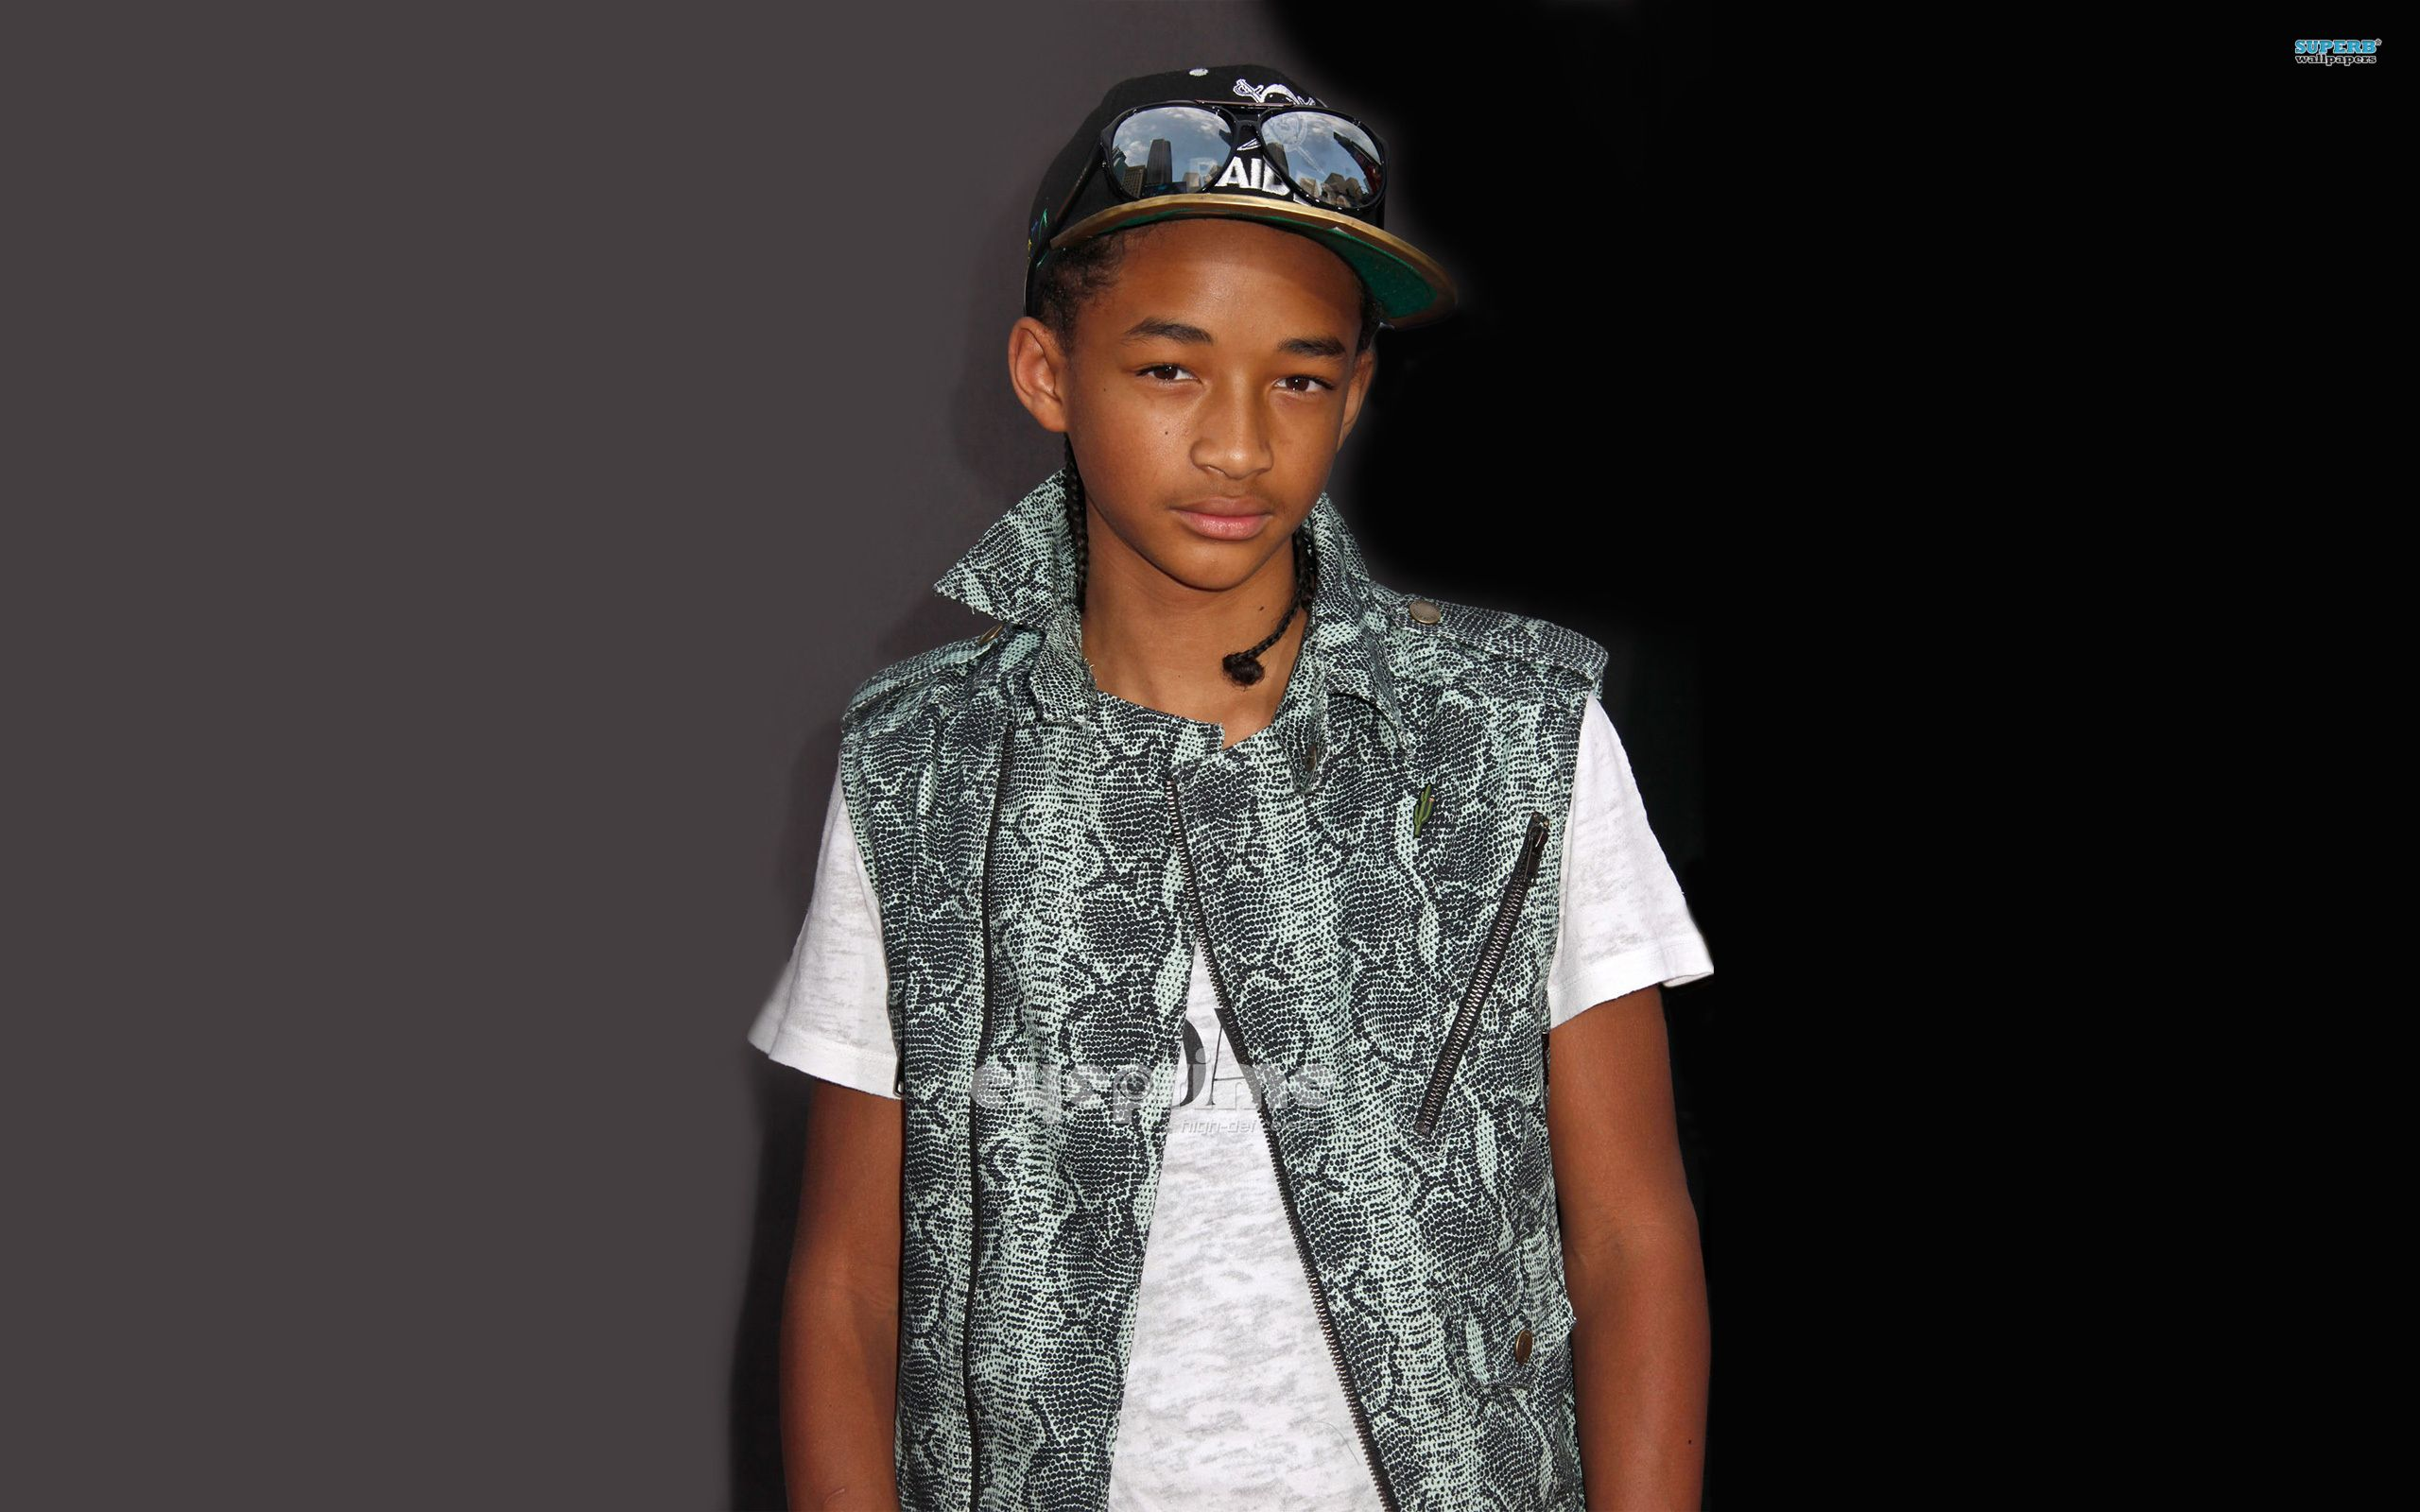 Jaden smith wallpaper hd images new download wallpaper jaden smith wallpaper hd images new voltagebd Choice Image